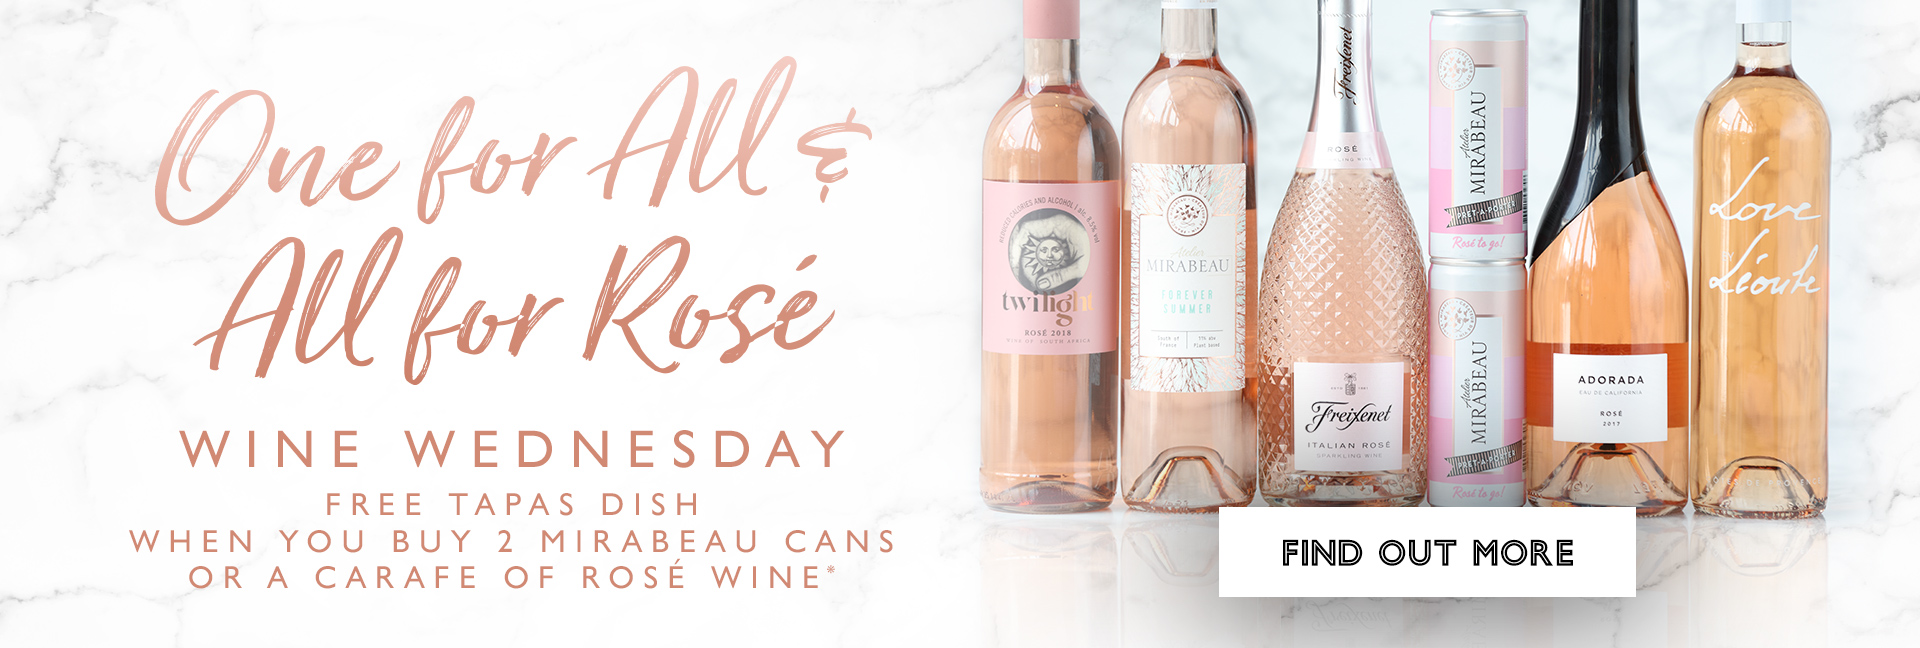 Wine Wednesdays at All Bar One Reading